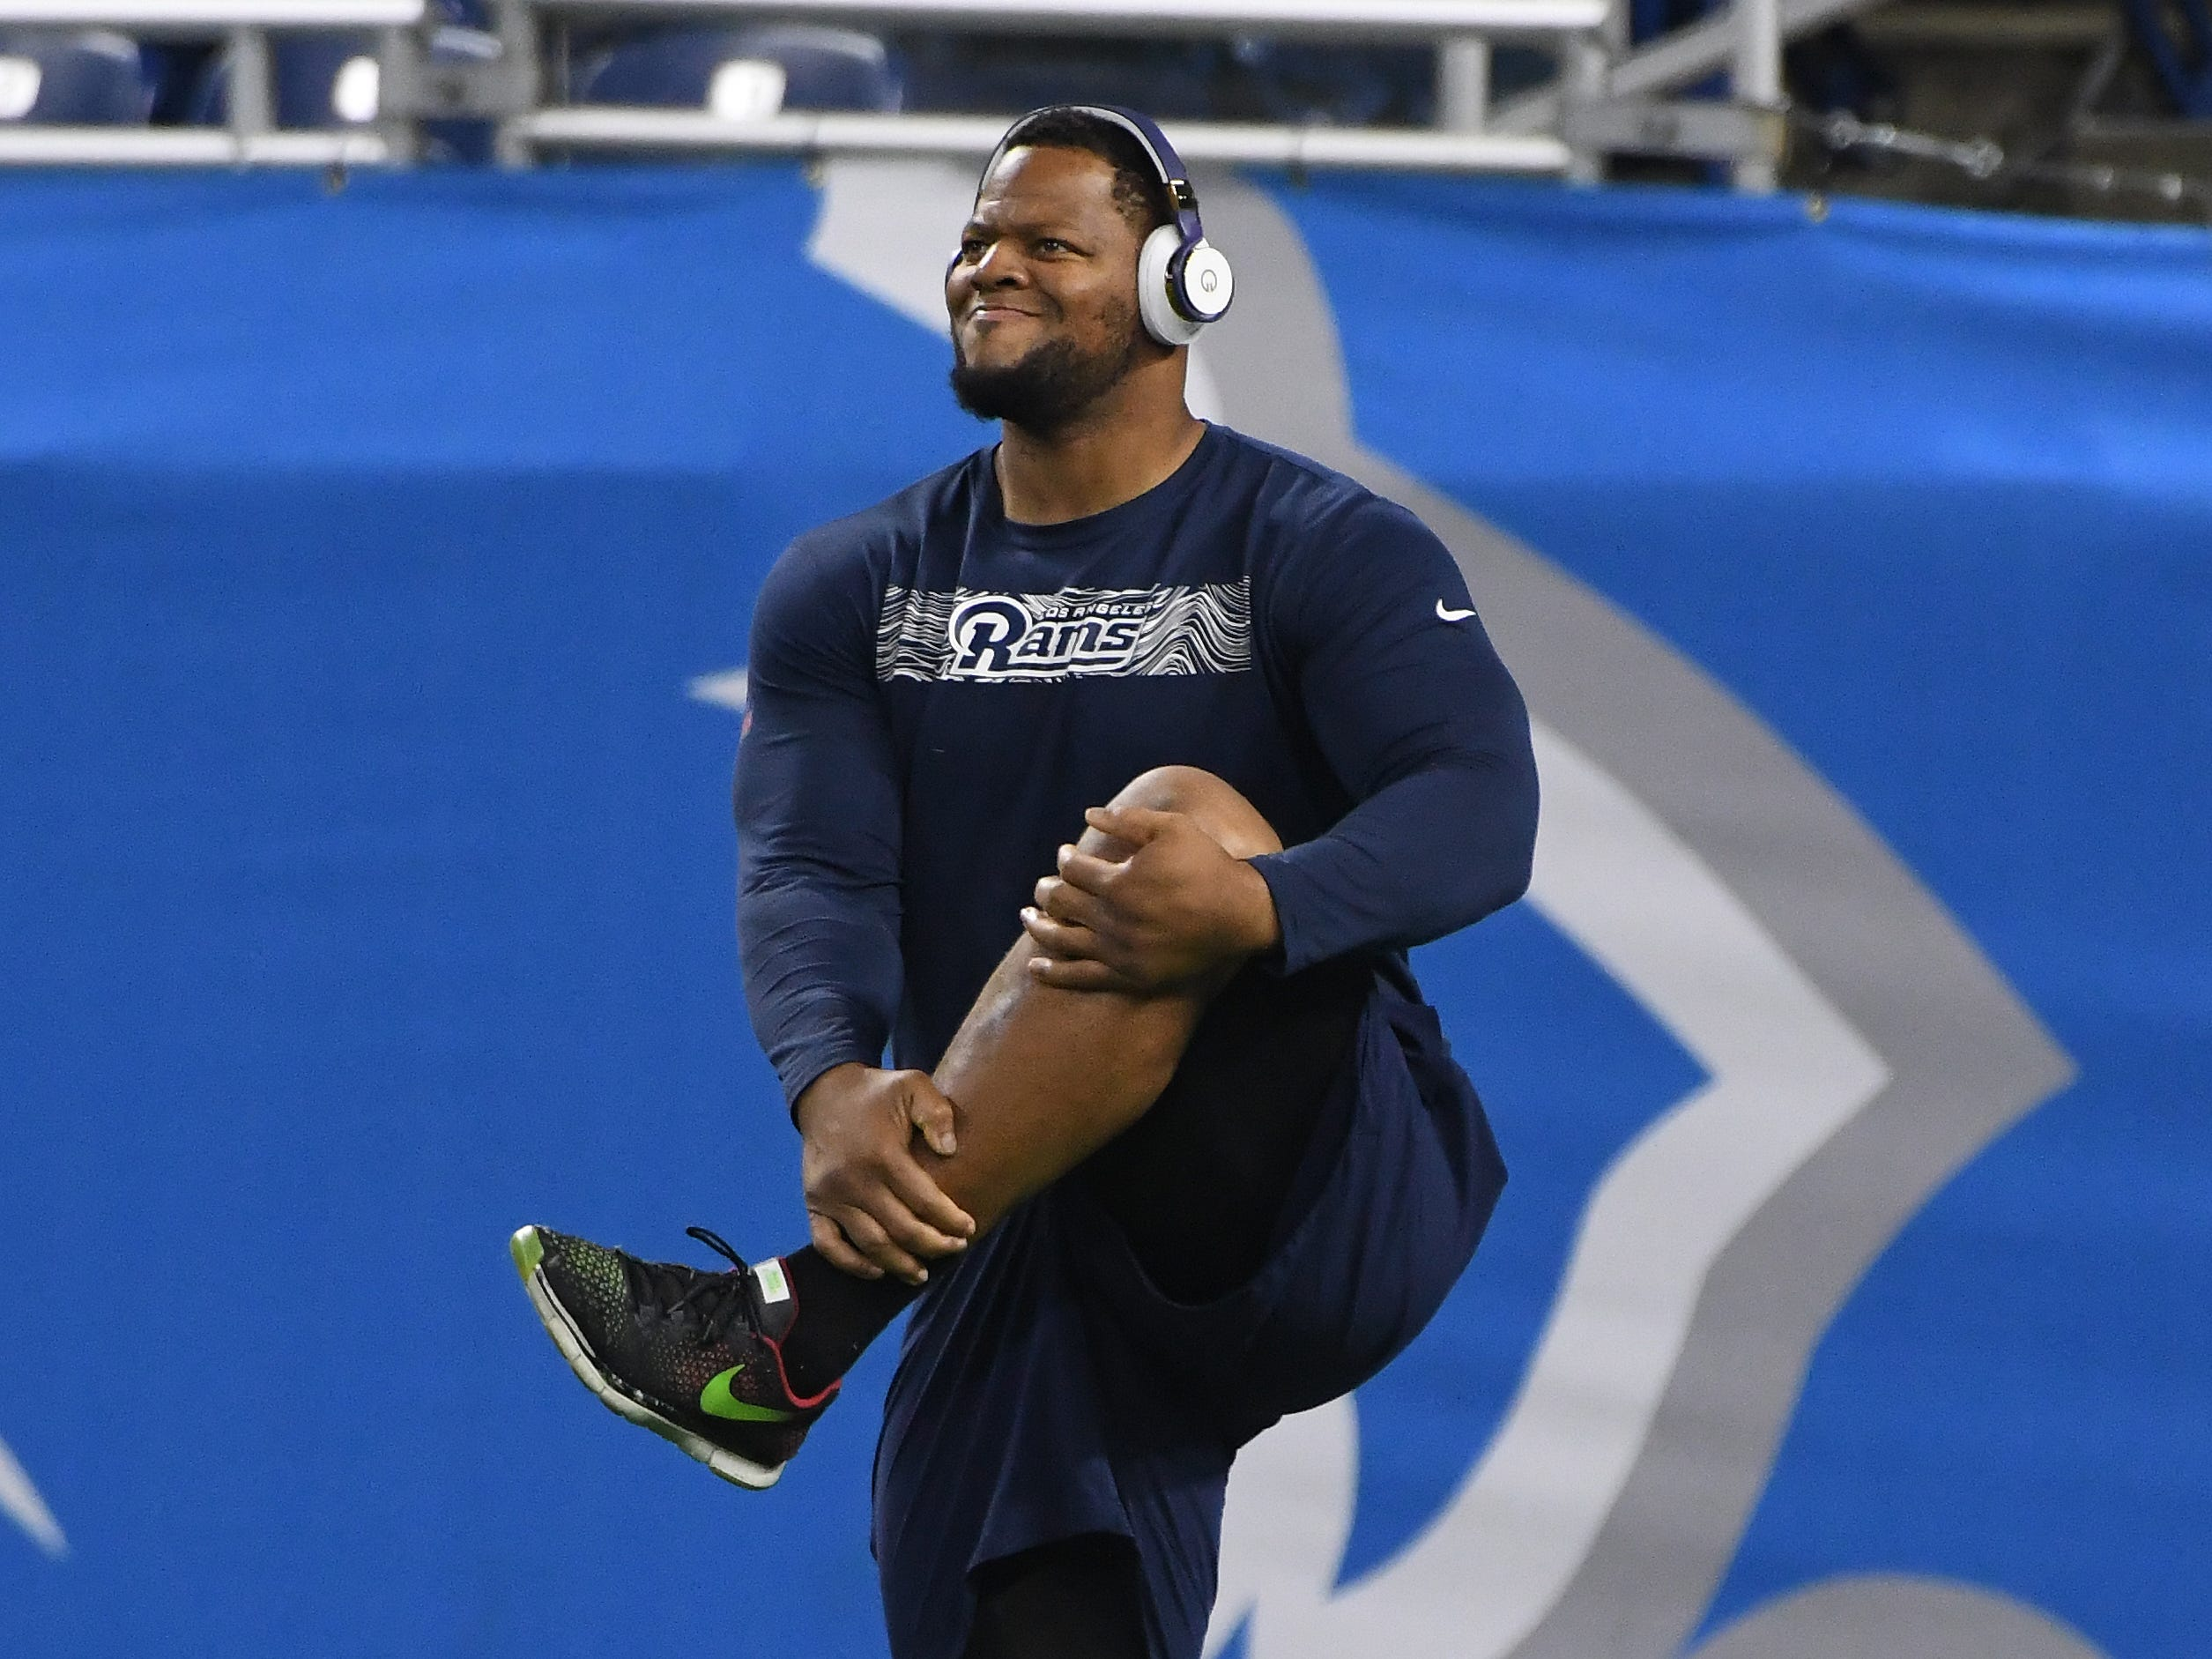 Former Detroit Lions, now Los Angeles Rams defensive tackle Ndamukong Suh warms up on the field before the game at Ford Field.